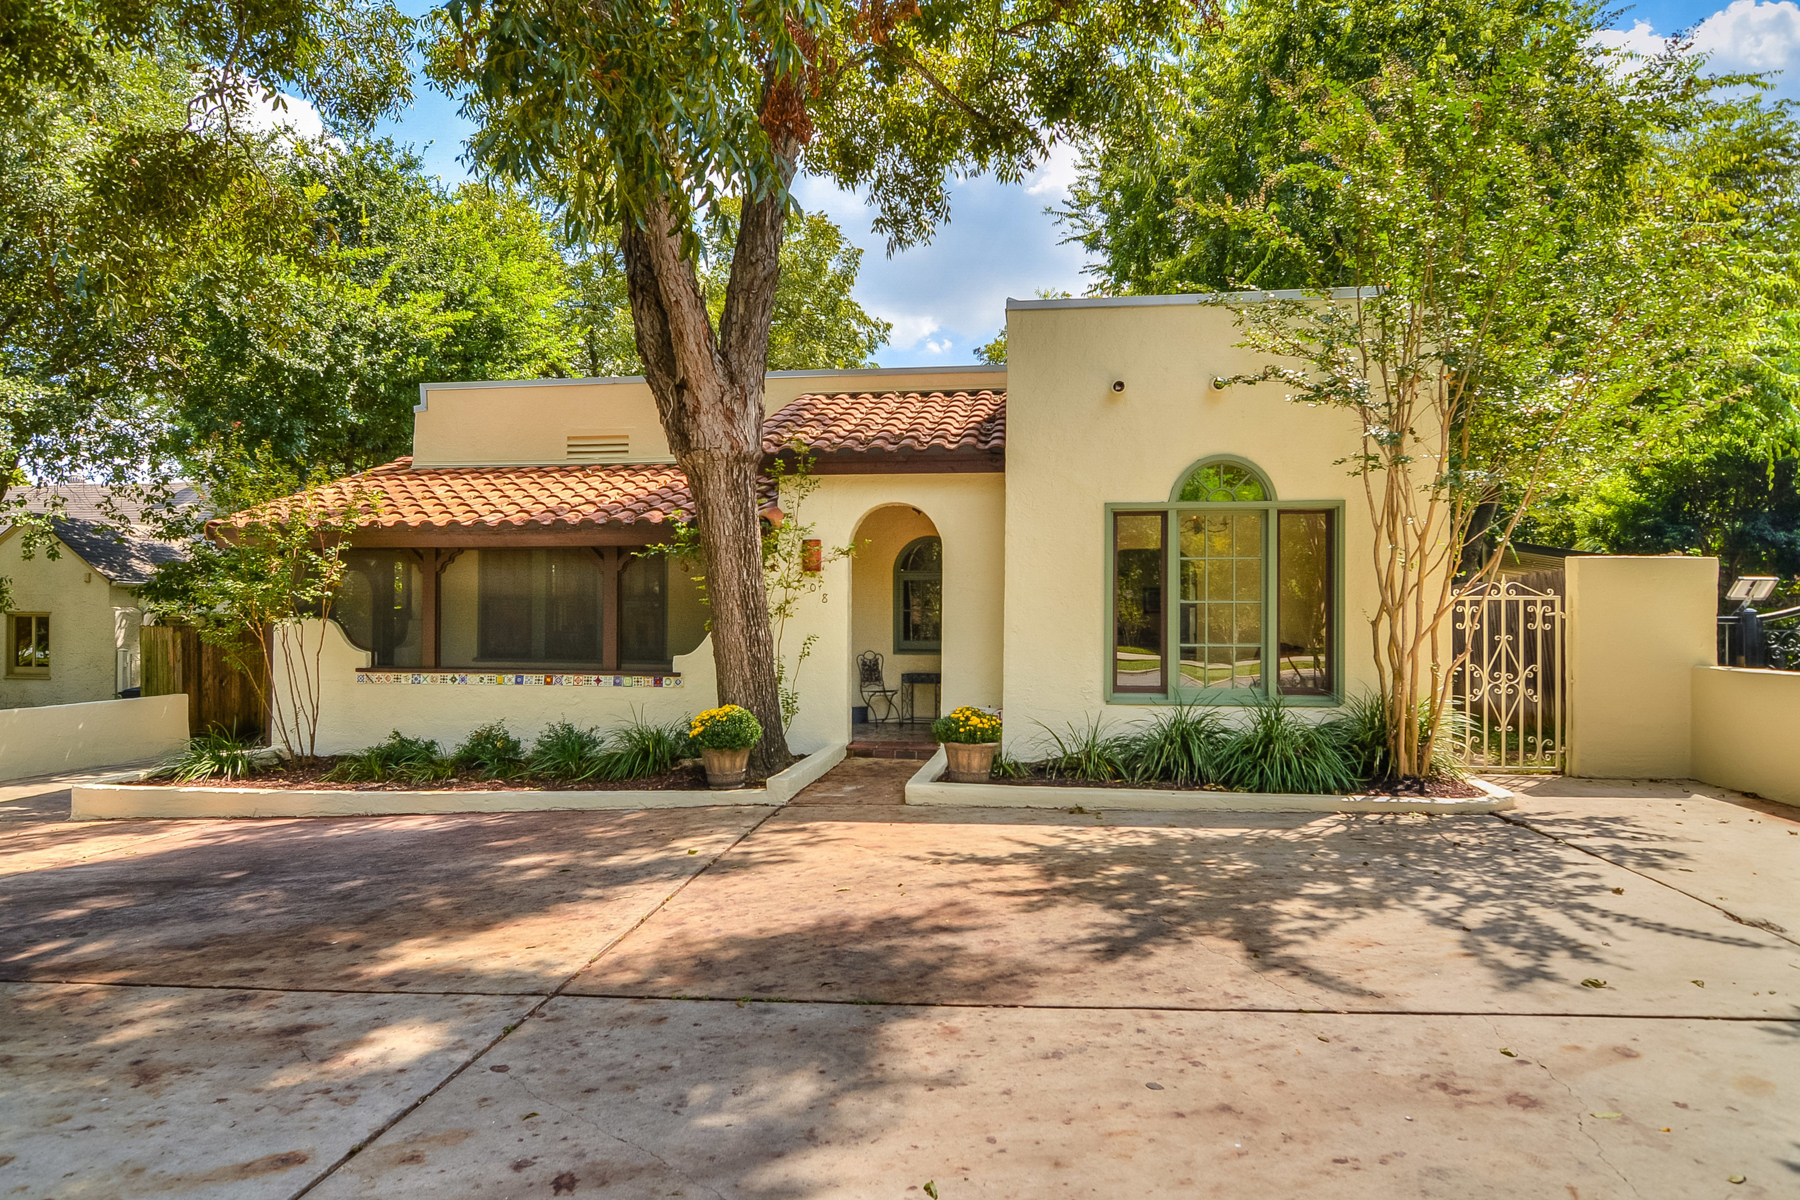 Single Family Home for Sale at Gorgeous Olmos Park Home 208 Primera Dr Olmos Park, Texas 78212 United States